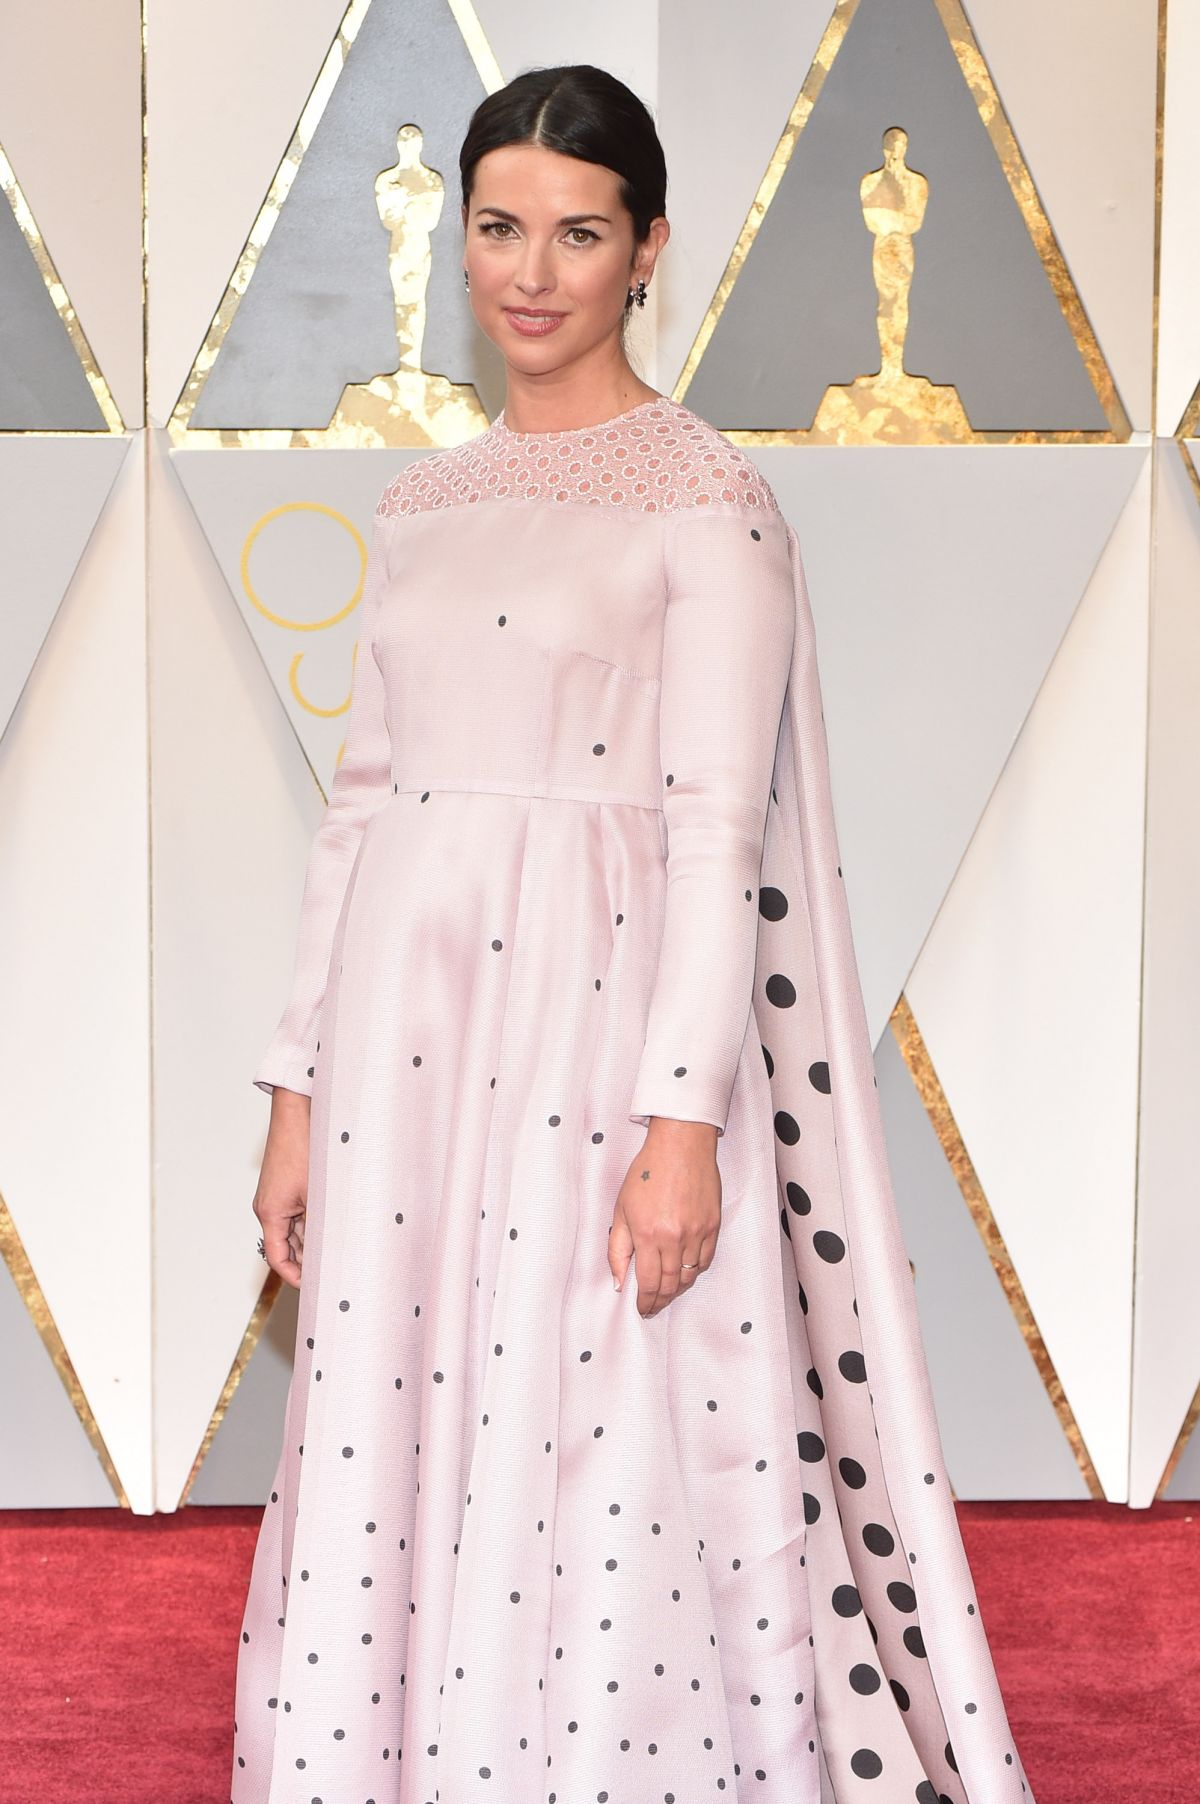 AMELIA WARNER at 89th Annual Academy Awards in Hollywood 02/26/2017